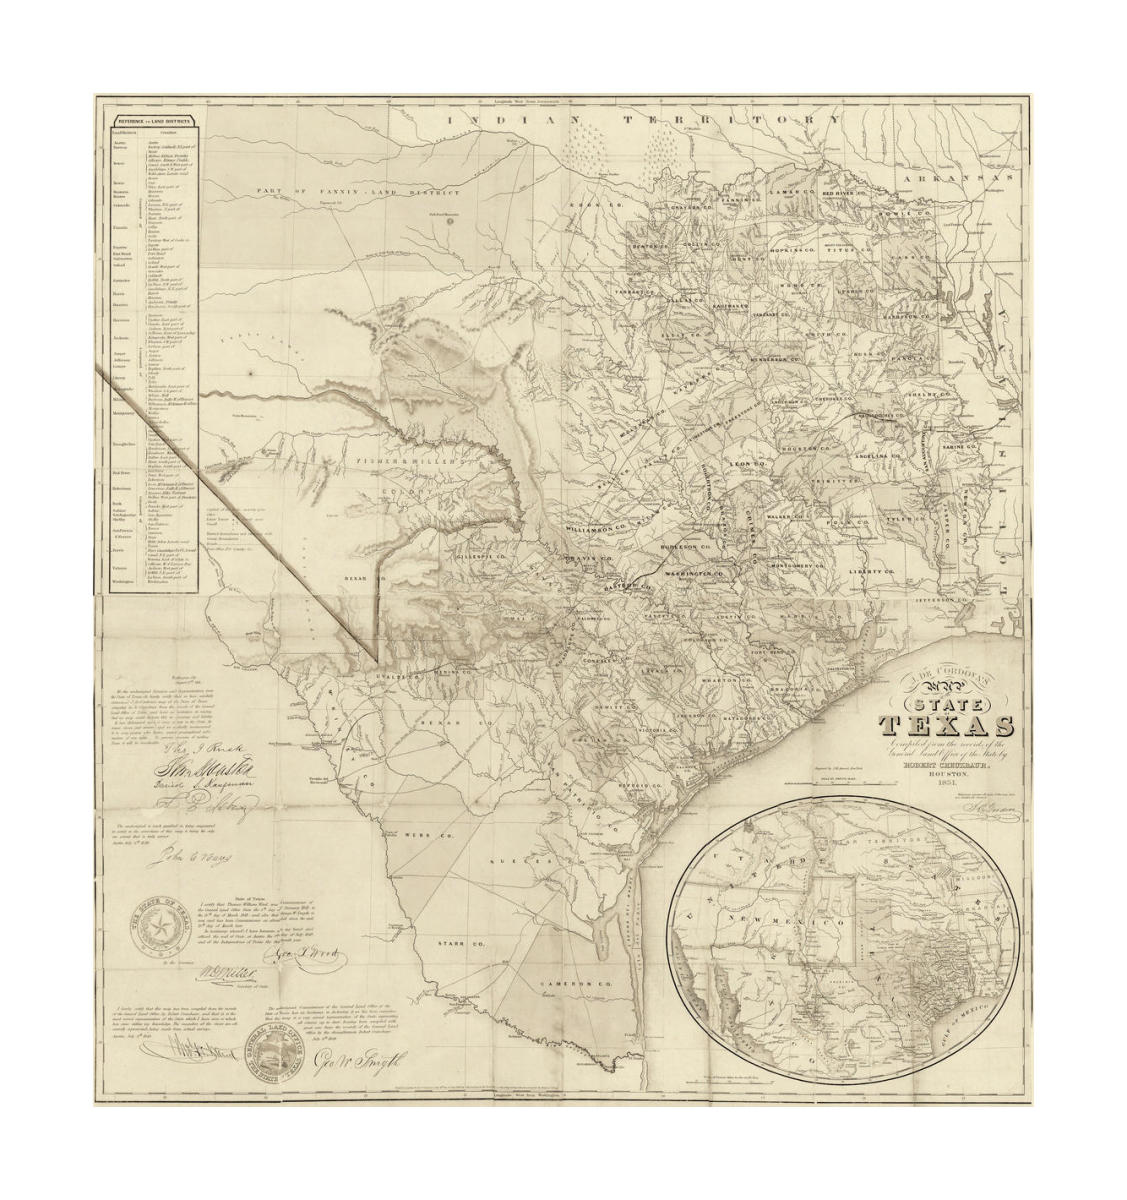 Map Of Texas Capitol.Jacob De Cordova Map Of The State Of Texas Compiled From The Records Of The General Land Office Of The State 1851